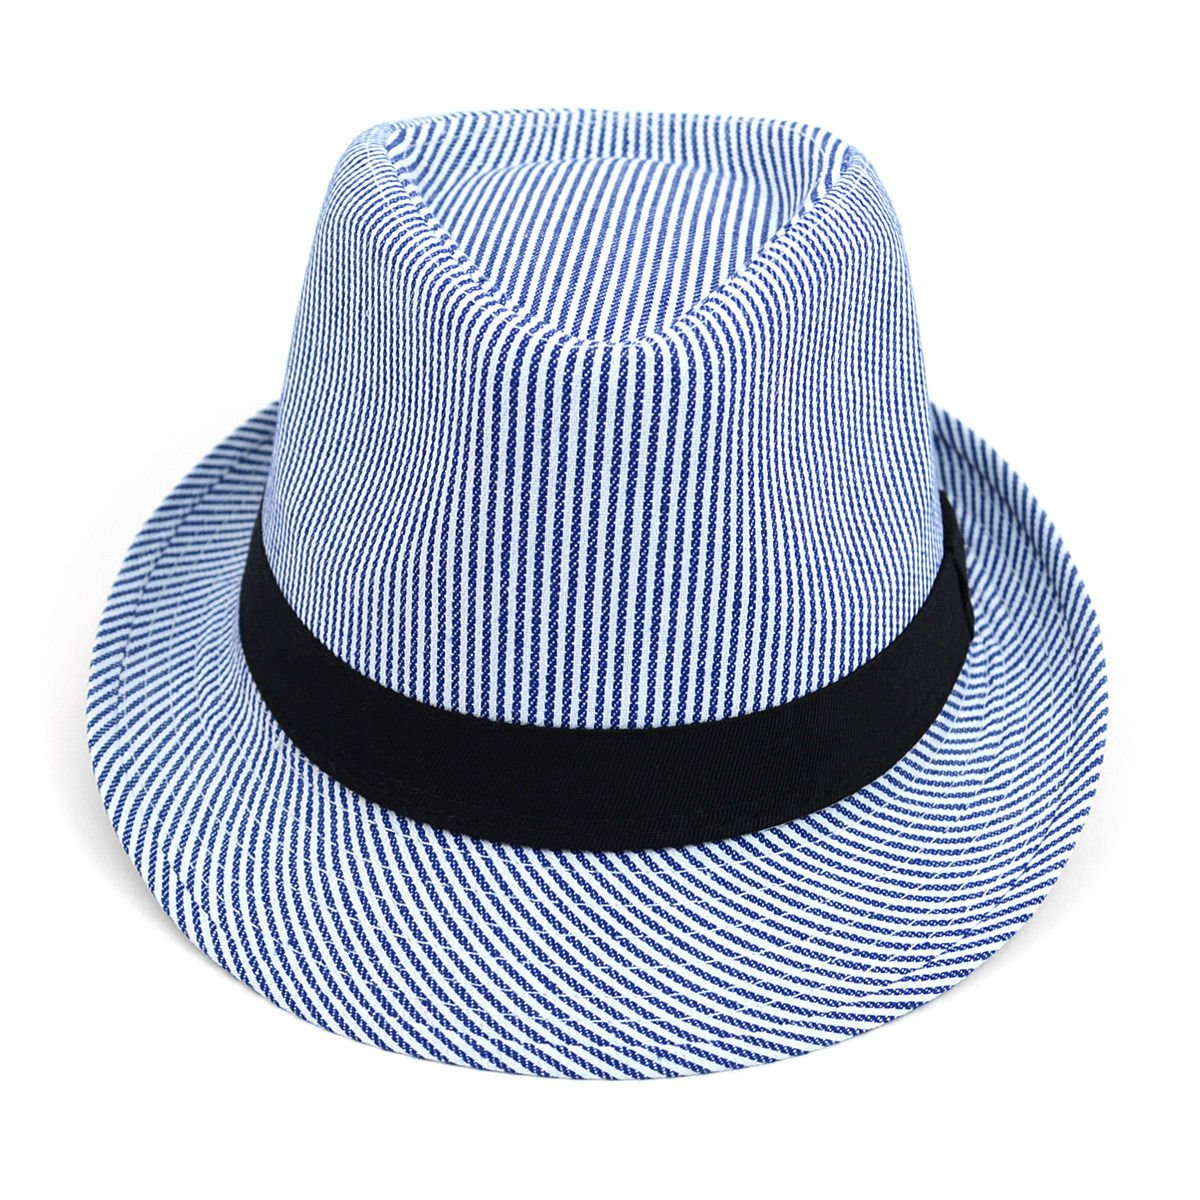 Unisex Spring//Summer Woven Fashion Fedora with Black Band FSS17108